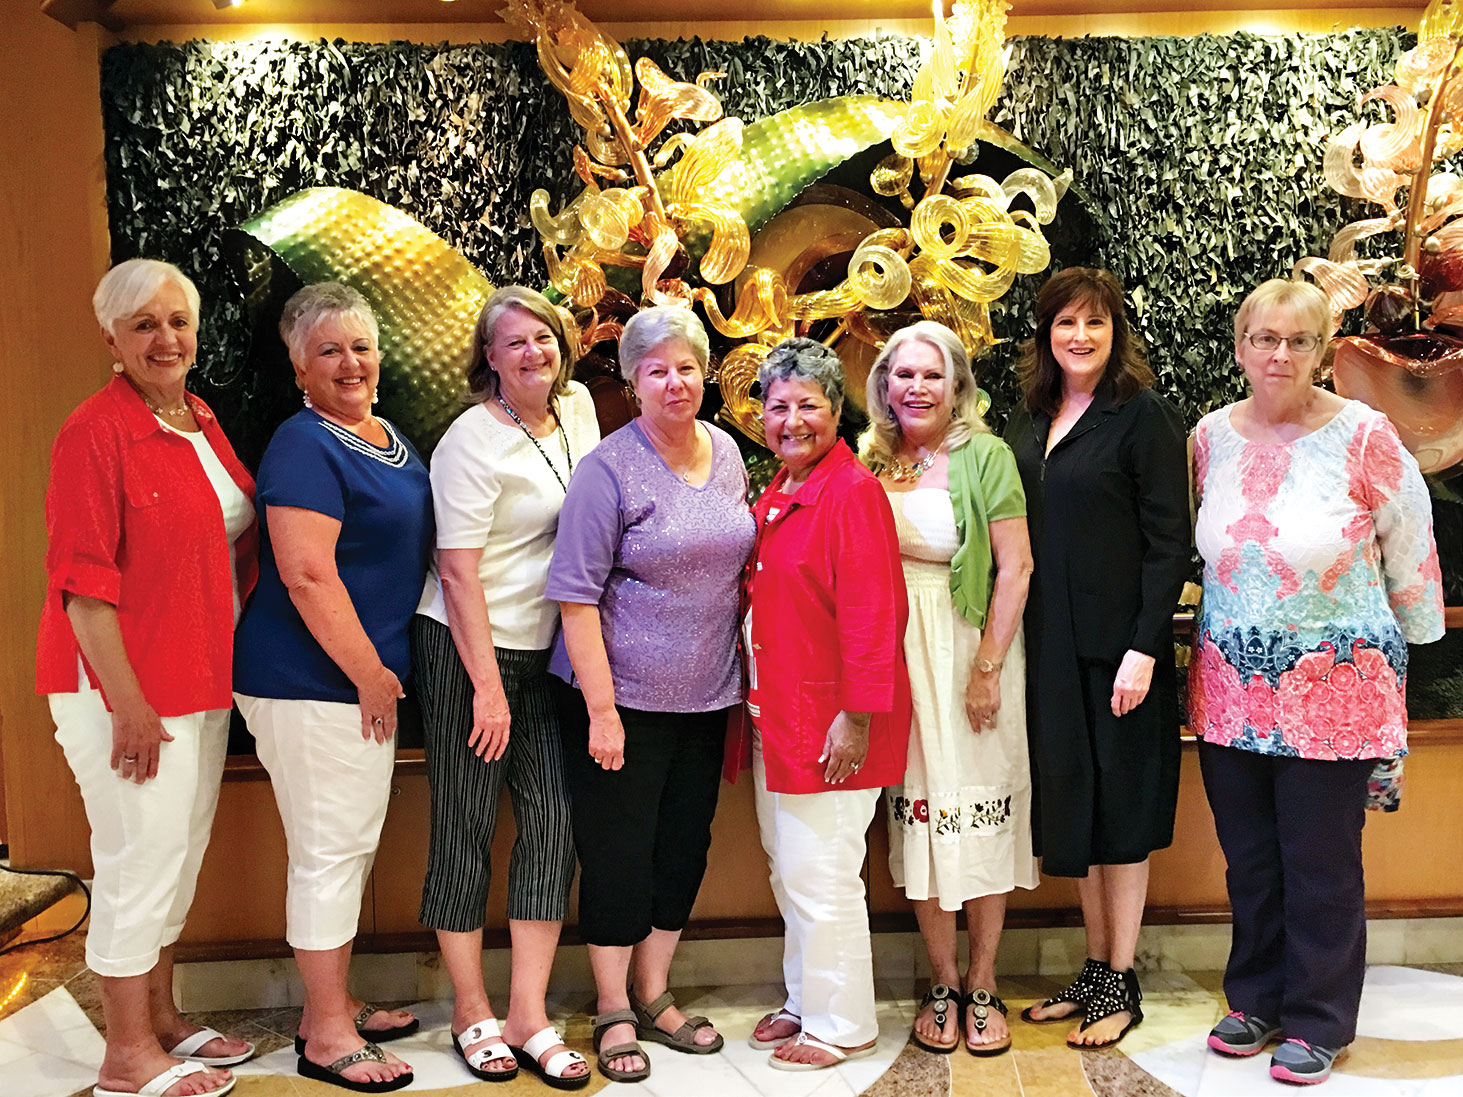 Robson Mah Jongg Cruisers, left to right: Raynelle Perkins, Sherry Light, Barbara Warren, Bonnie West, Renee Claytor, Wilna Neill, Carol Stoltz and Mary Metrolis